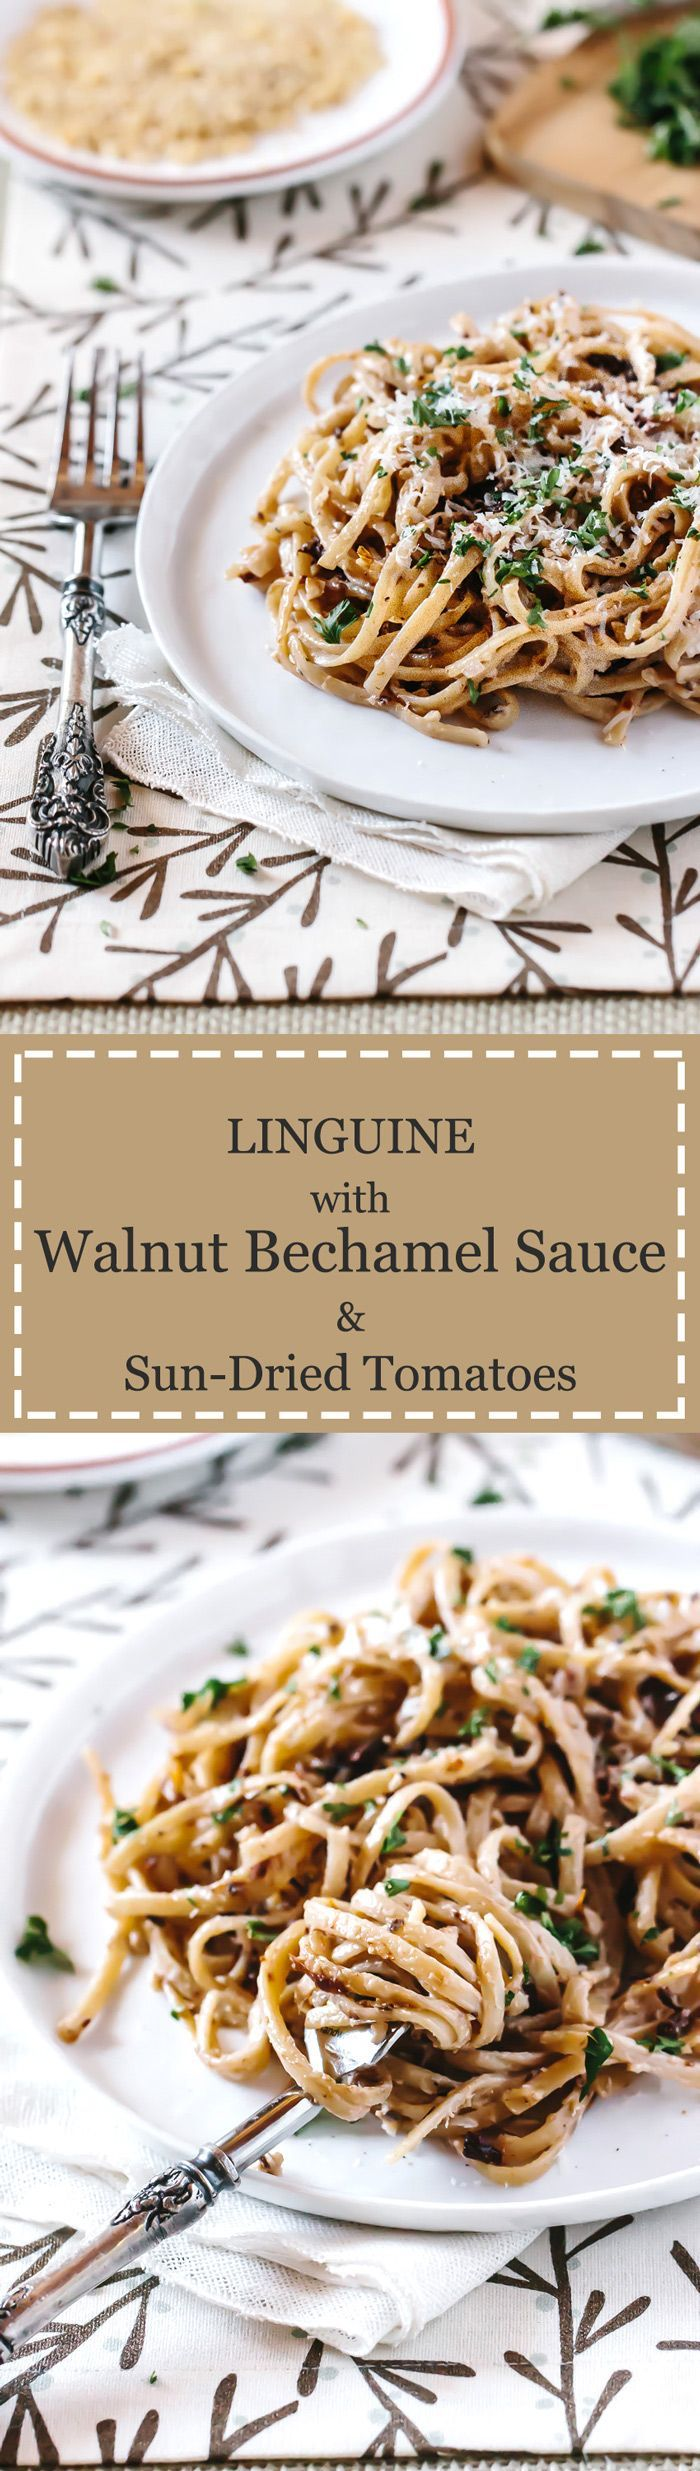 Linguine with Walnut Bachamel Sauce and Sun-Dried Tomatoes - An easy to make and super flavorful pasta dish recipe  that you can make for your family.